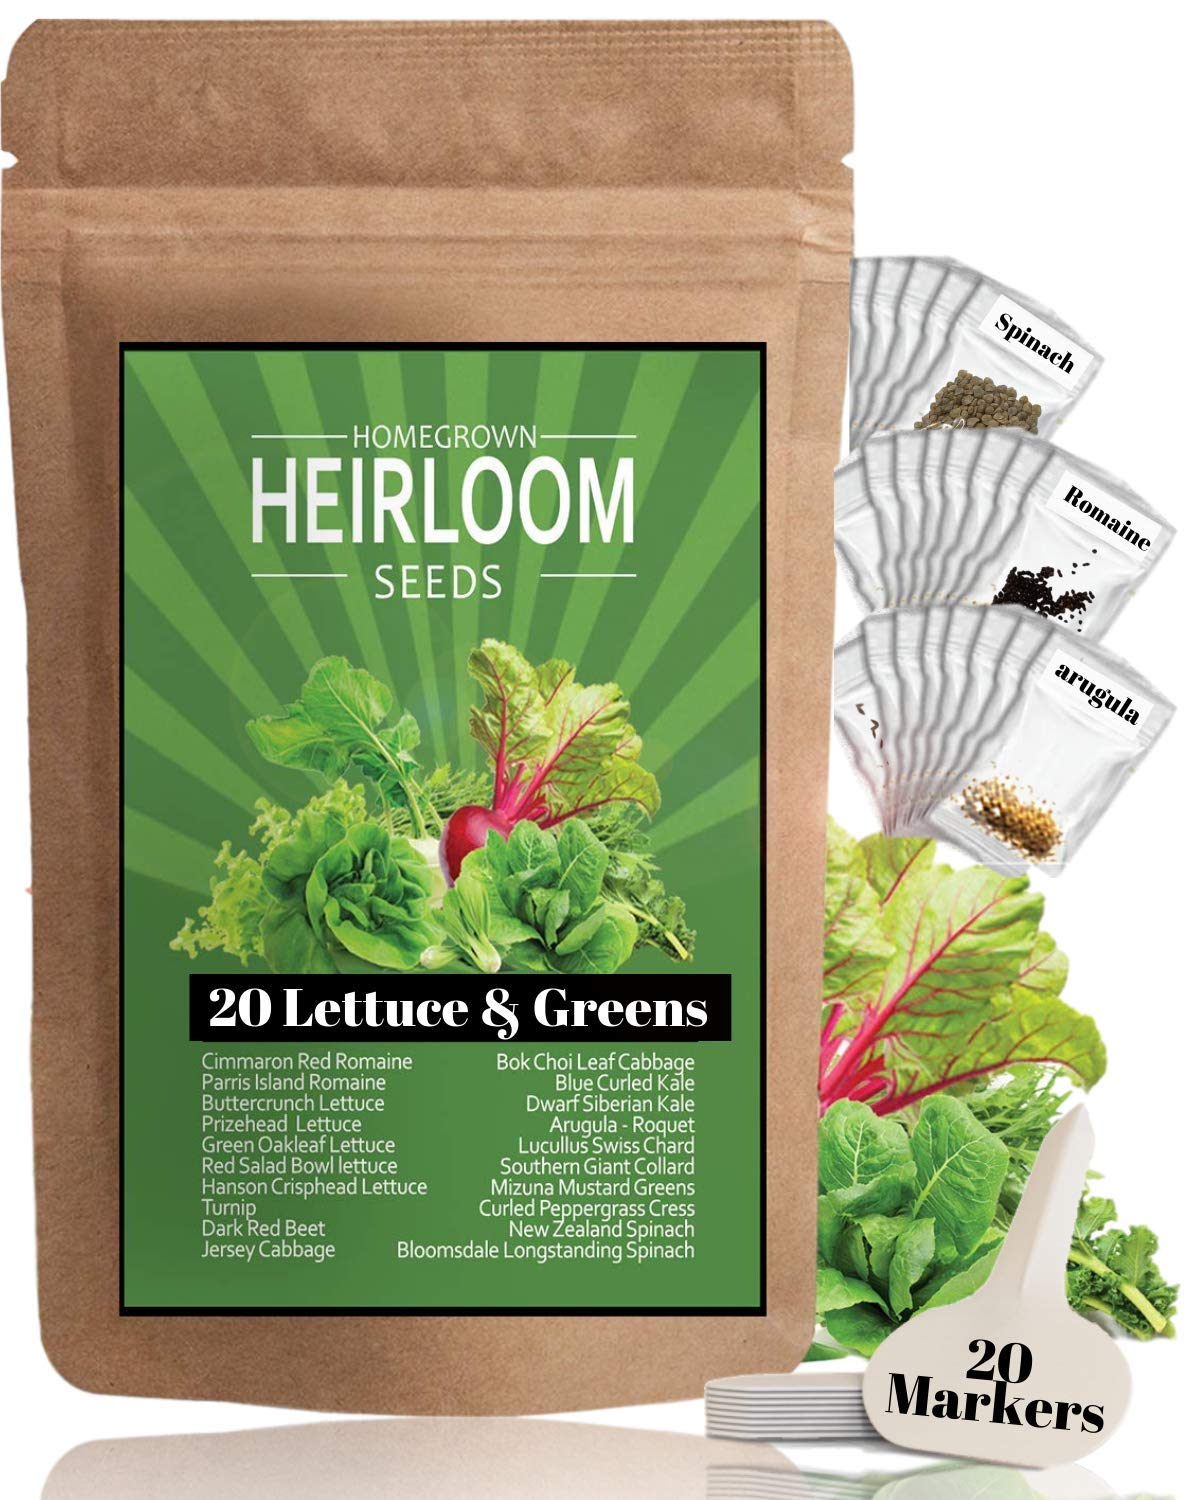 Lettuce & Leafy Vegetables Heirloom Seeds [20 Varieties - 3000 Seed] Kale, Spinach, Arugula, Cabbage, Romaine, Iceberg, Bibb | Hydroponic Vegetable Garden Seeds | Non Gmo Microgreen Seeds For Planting by homegrown